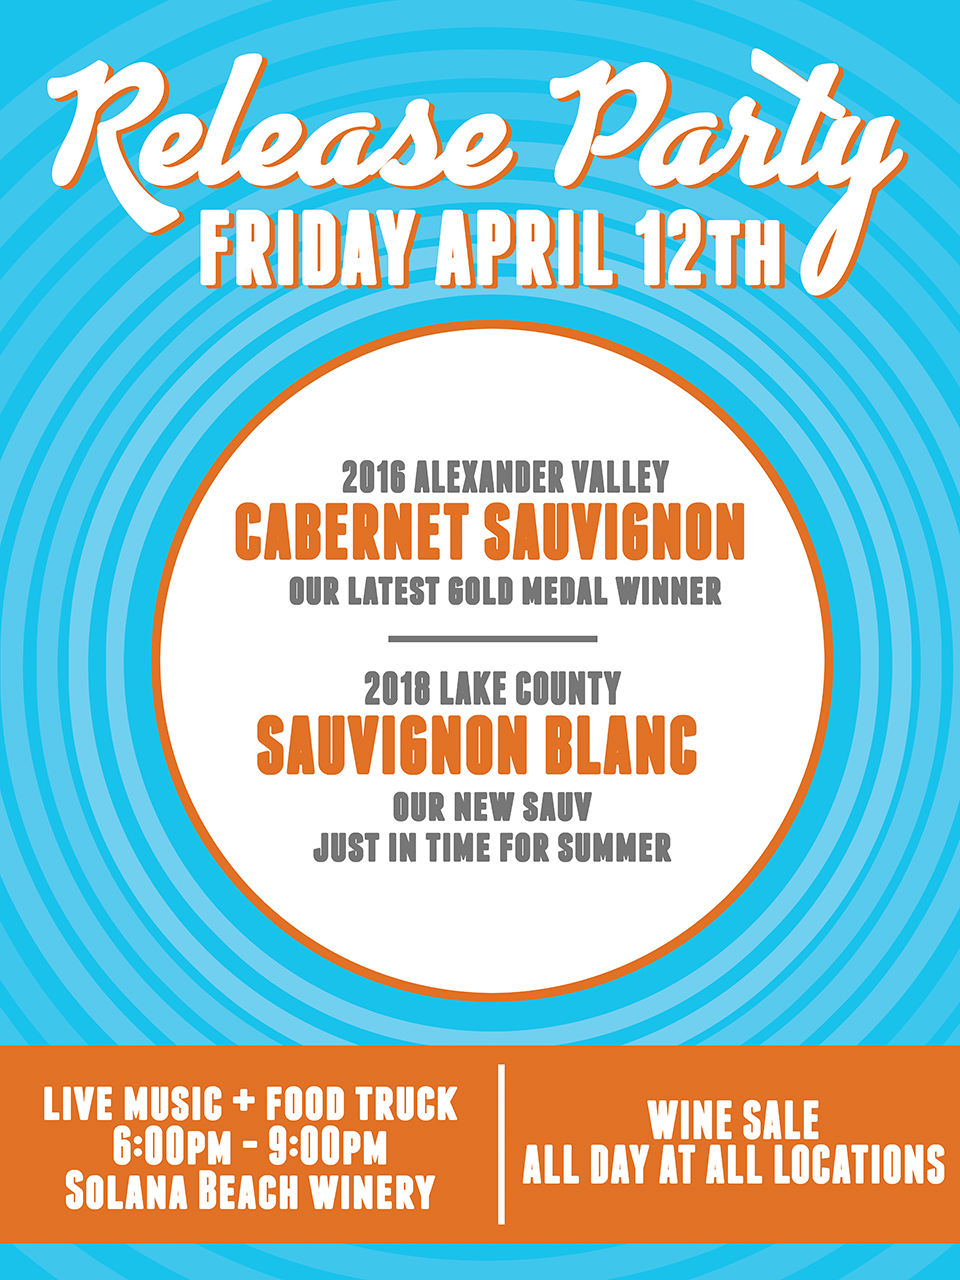 CarruthCellars-ReleaseParty-April2019